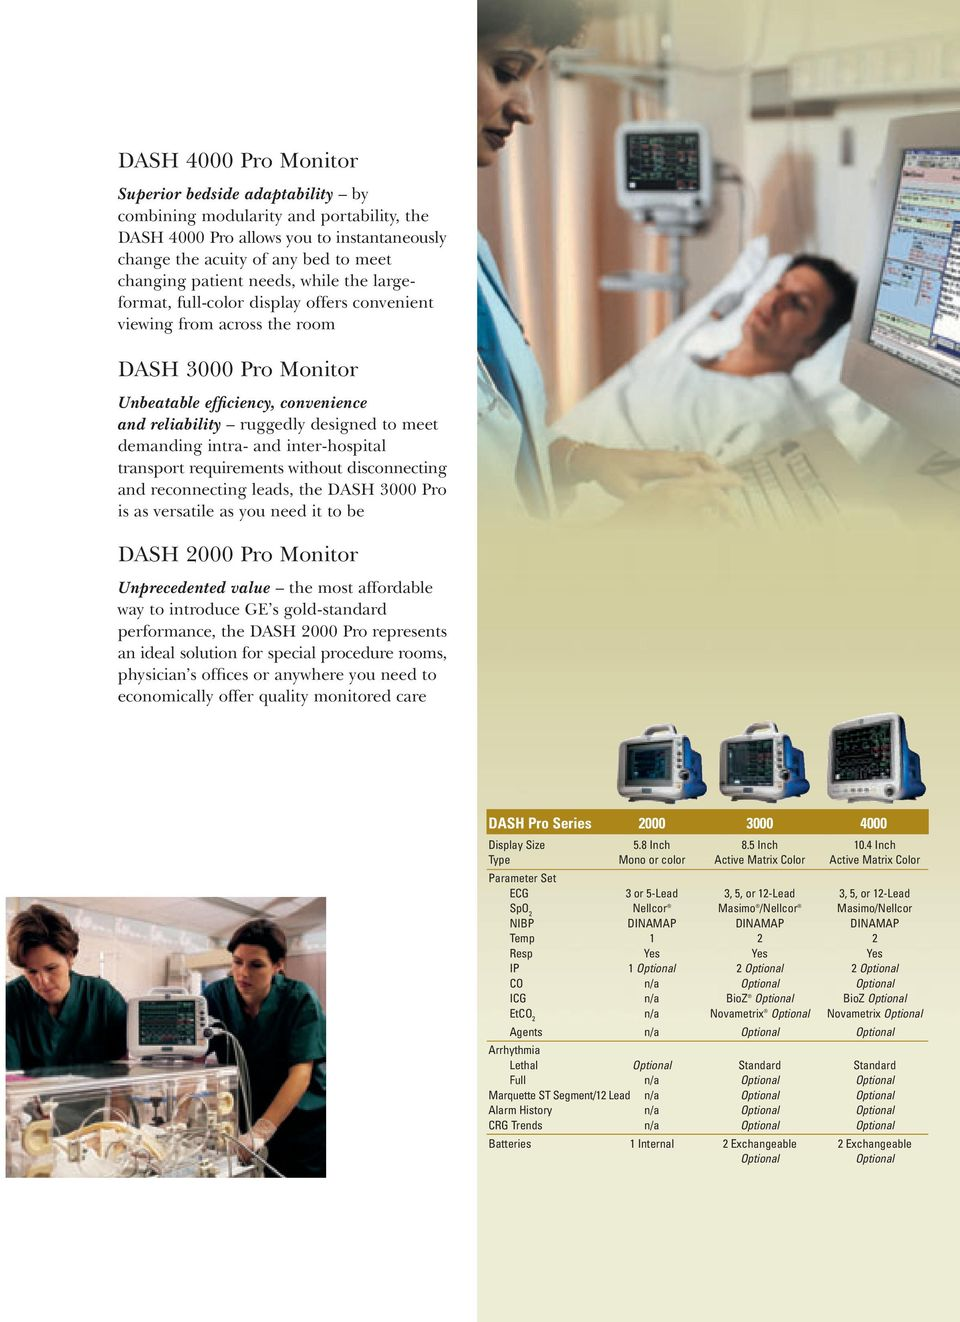 demanding intra- and inter-hospital transport requirements without disconnecting and reconnecting leads, the DASH 3000 Pro is as versatile as you need it to be DASH 2000 Pro Monitor Unprecedented